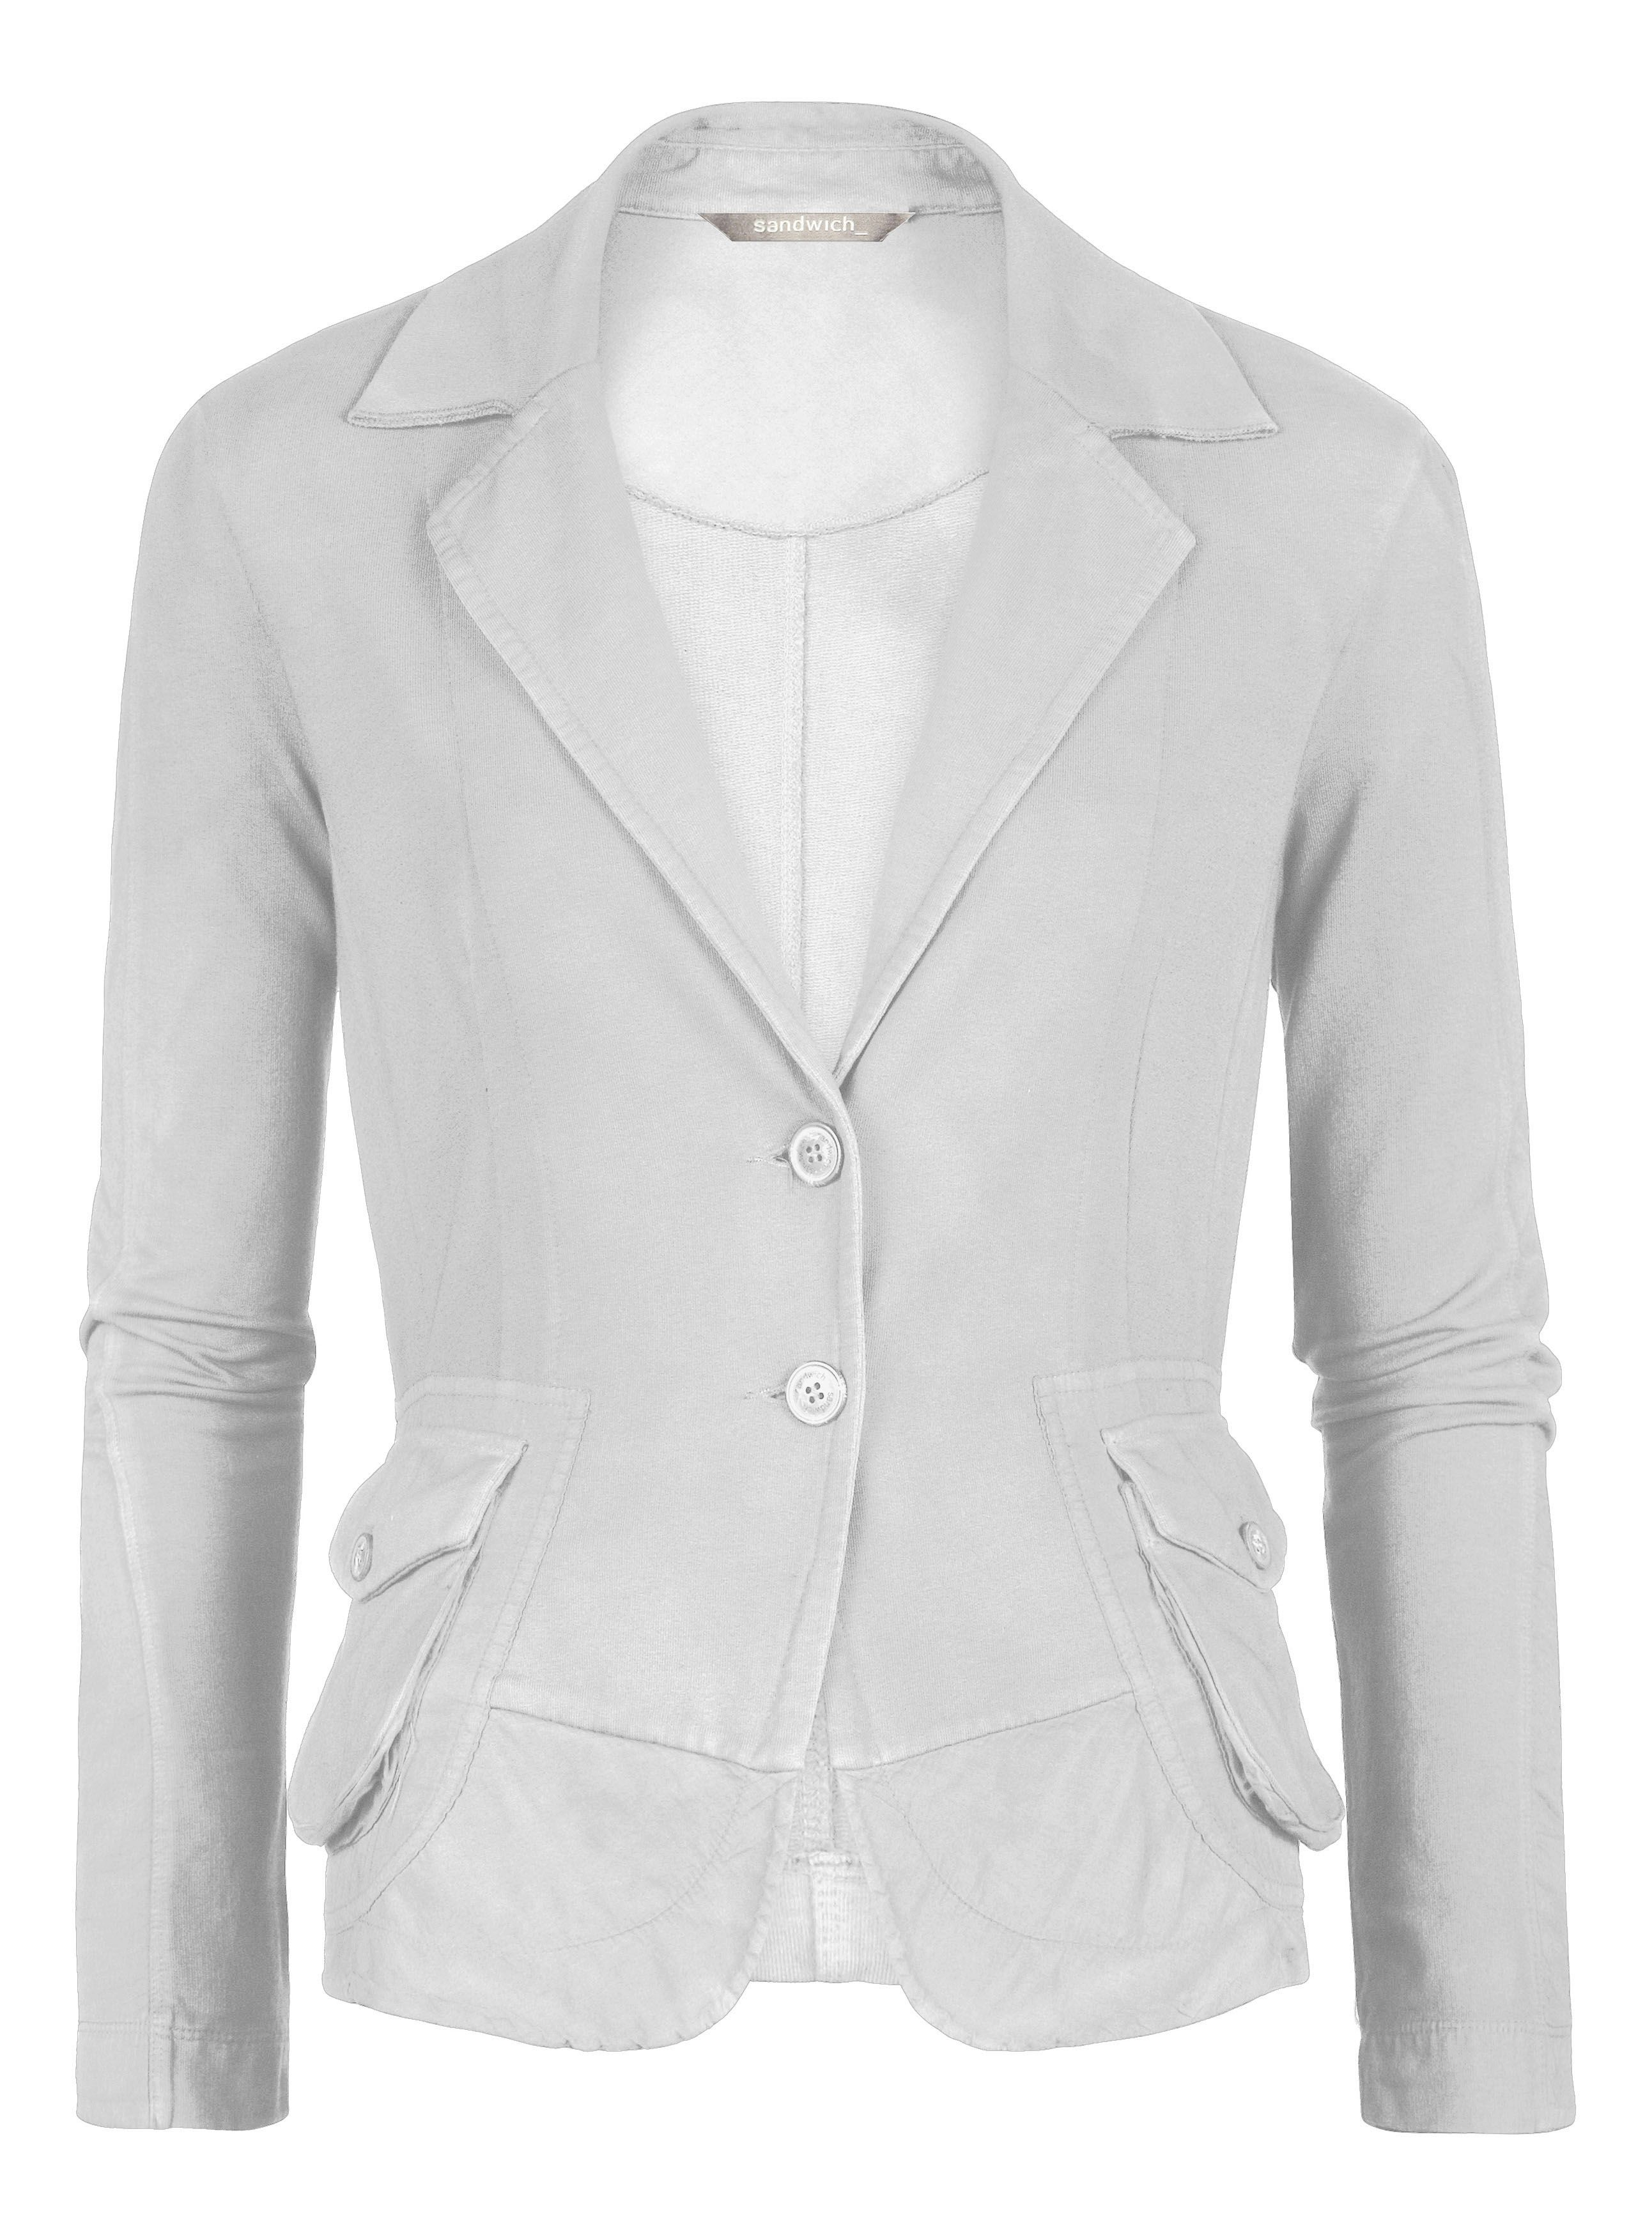 Cotton jersey blazer